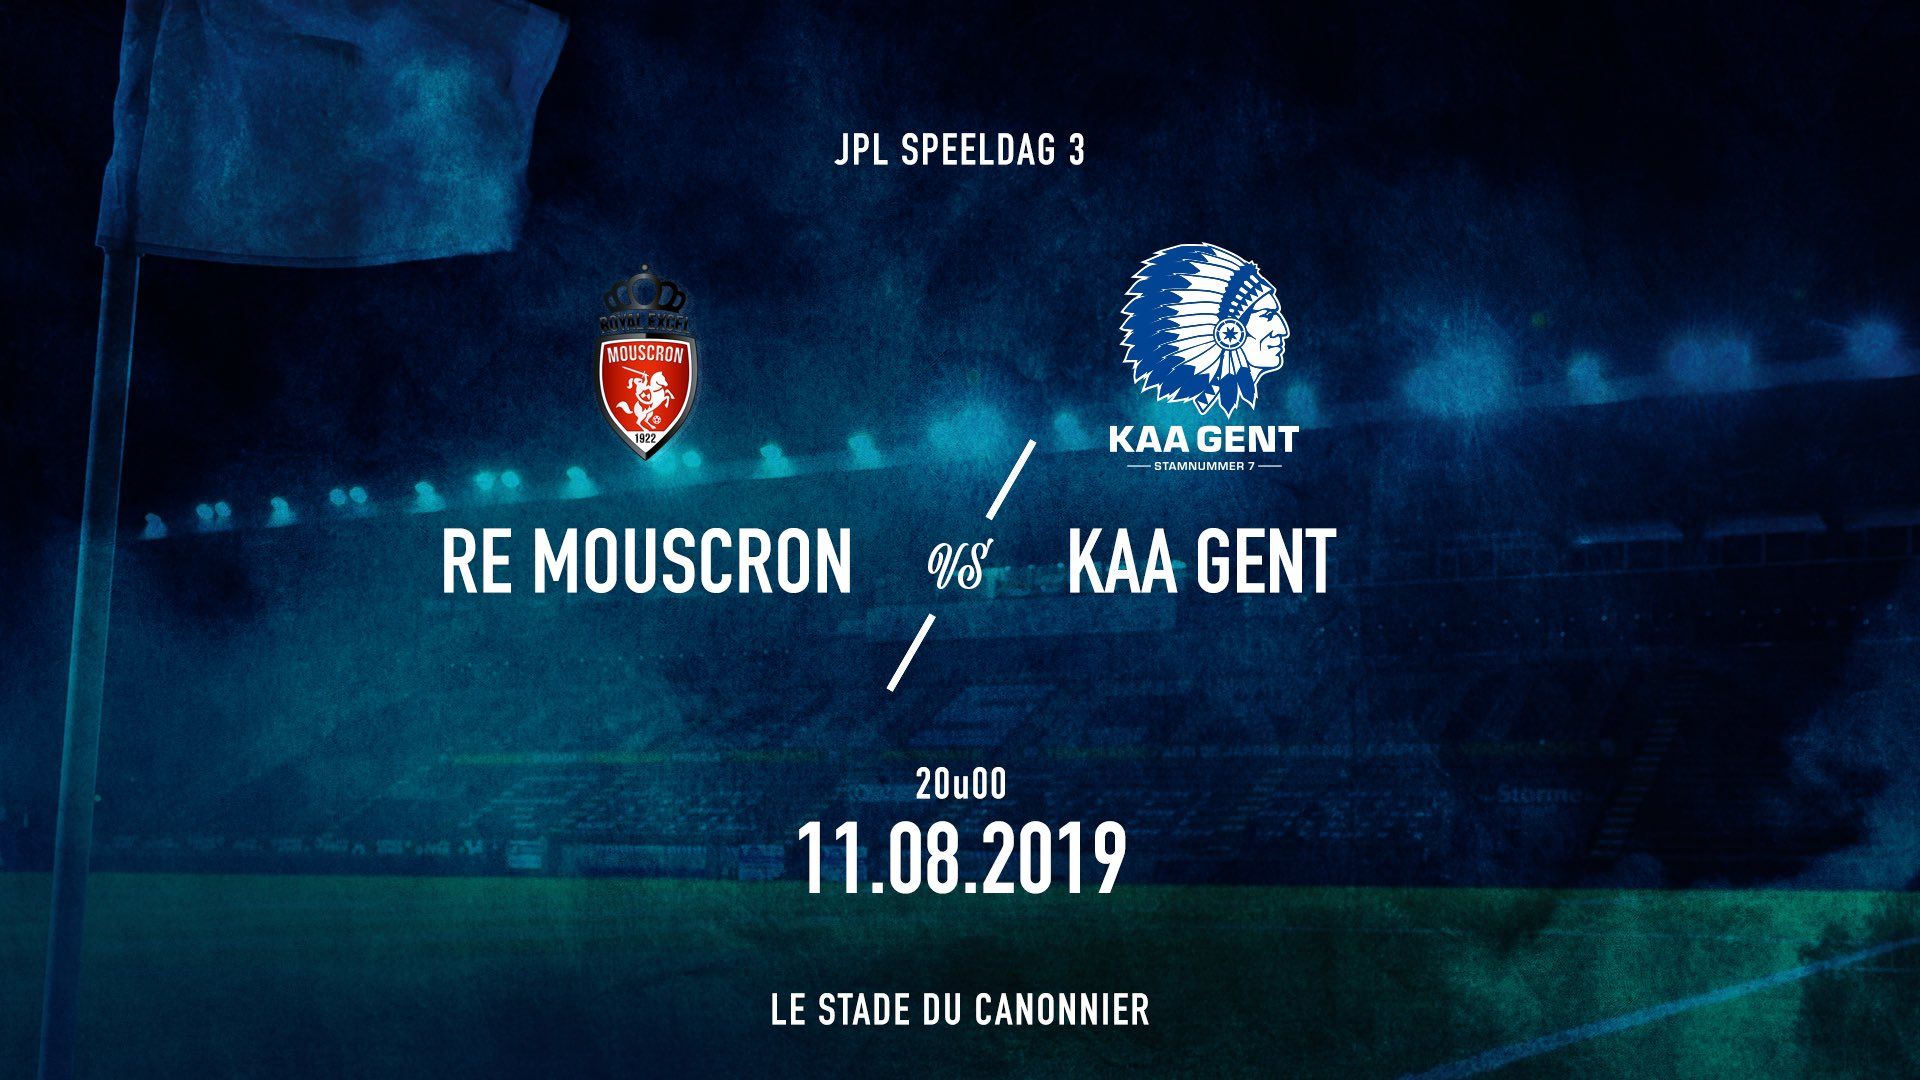 Kaa Gent On Twitter Matchday At Excelmouscron Jpl